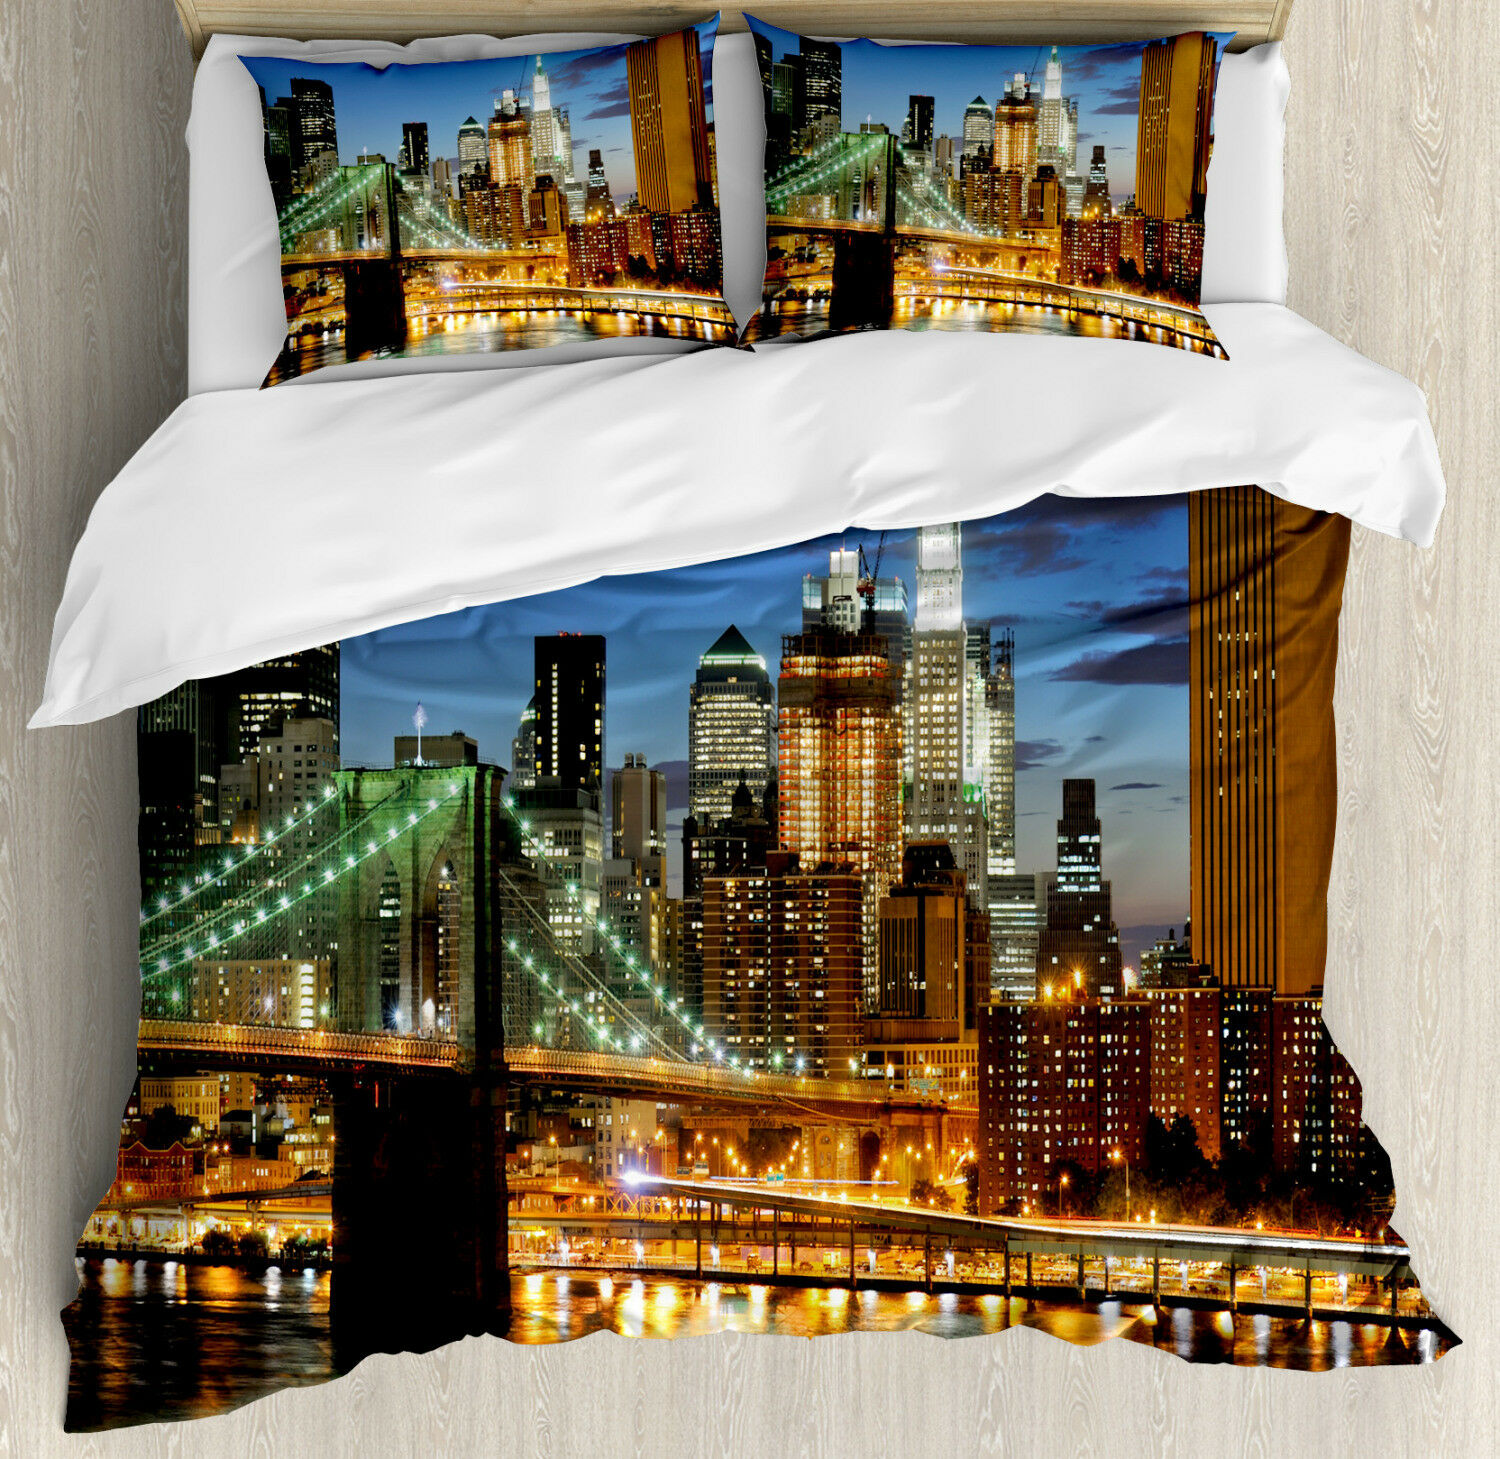 City Duvet Cover Set with Pillow Shams New York at Night Bridge Print